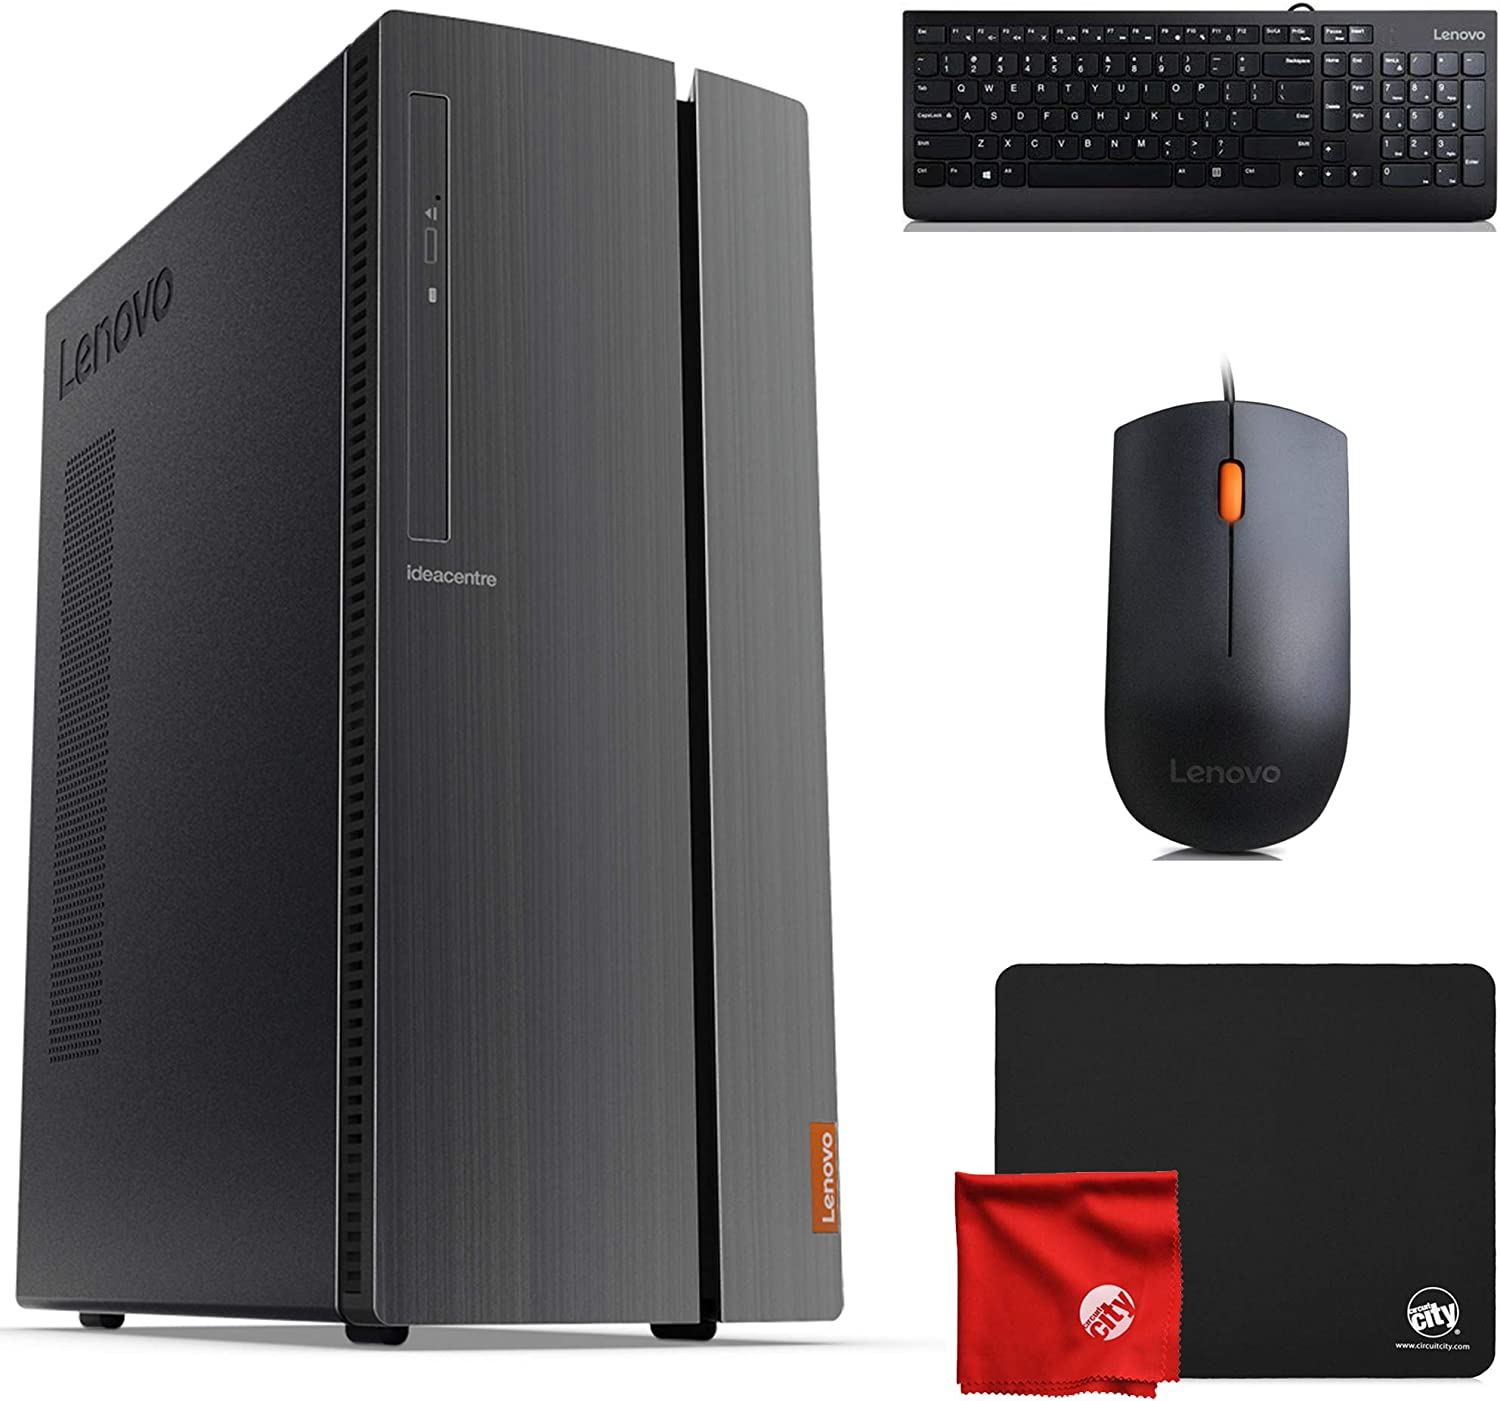 Lenovo 510A Desktop (AMD Ryzen 3 3200G 3.6GHz, 8GB RAM, Windows 10 Pro 64-Bit, 256GB SSD, DVD-RW, Radeon Vega 8) Computer Bundle with Mouse Pad